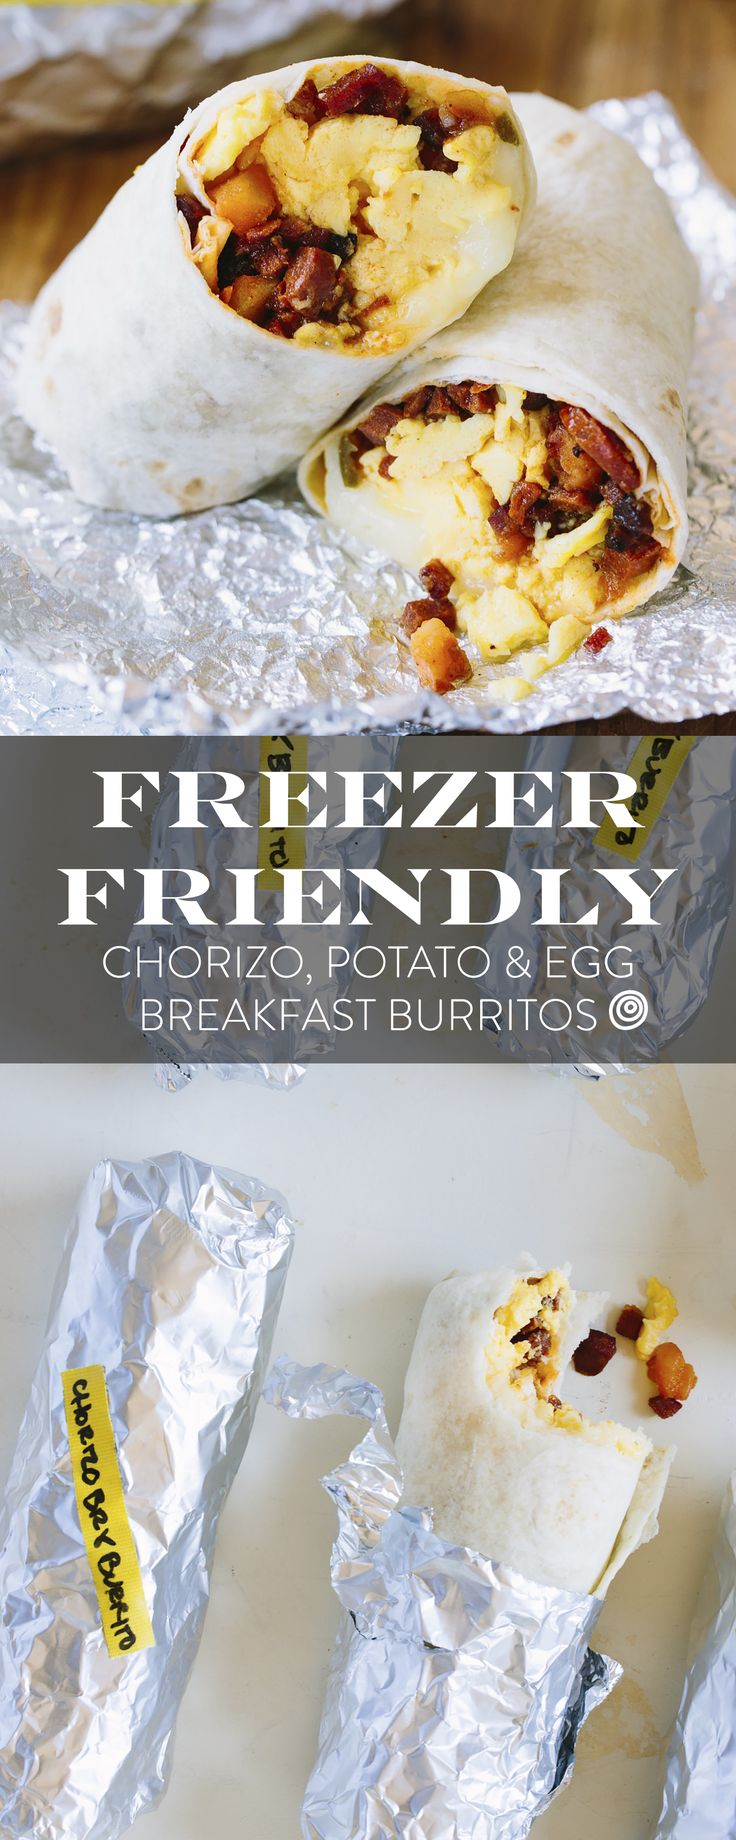 Frozen Make Ahead Breakfast Ideas: Crispy Potato and Chorizo Frozen Burritos. These EASY burritos come together QUICKLY and reheat in the oven or toaster oven so you can take them to work - or heat them in the oven while you get ready. With egg, potatoes, and chorizo, your whole family will love them. Such a crowd pleaser!